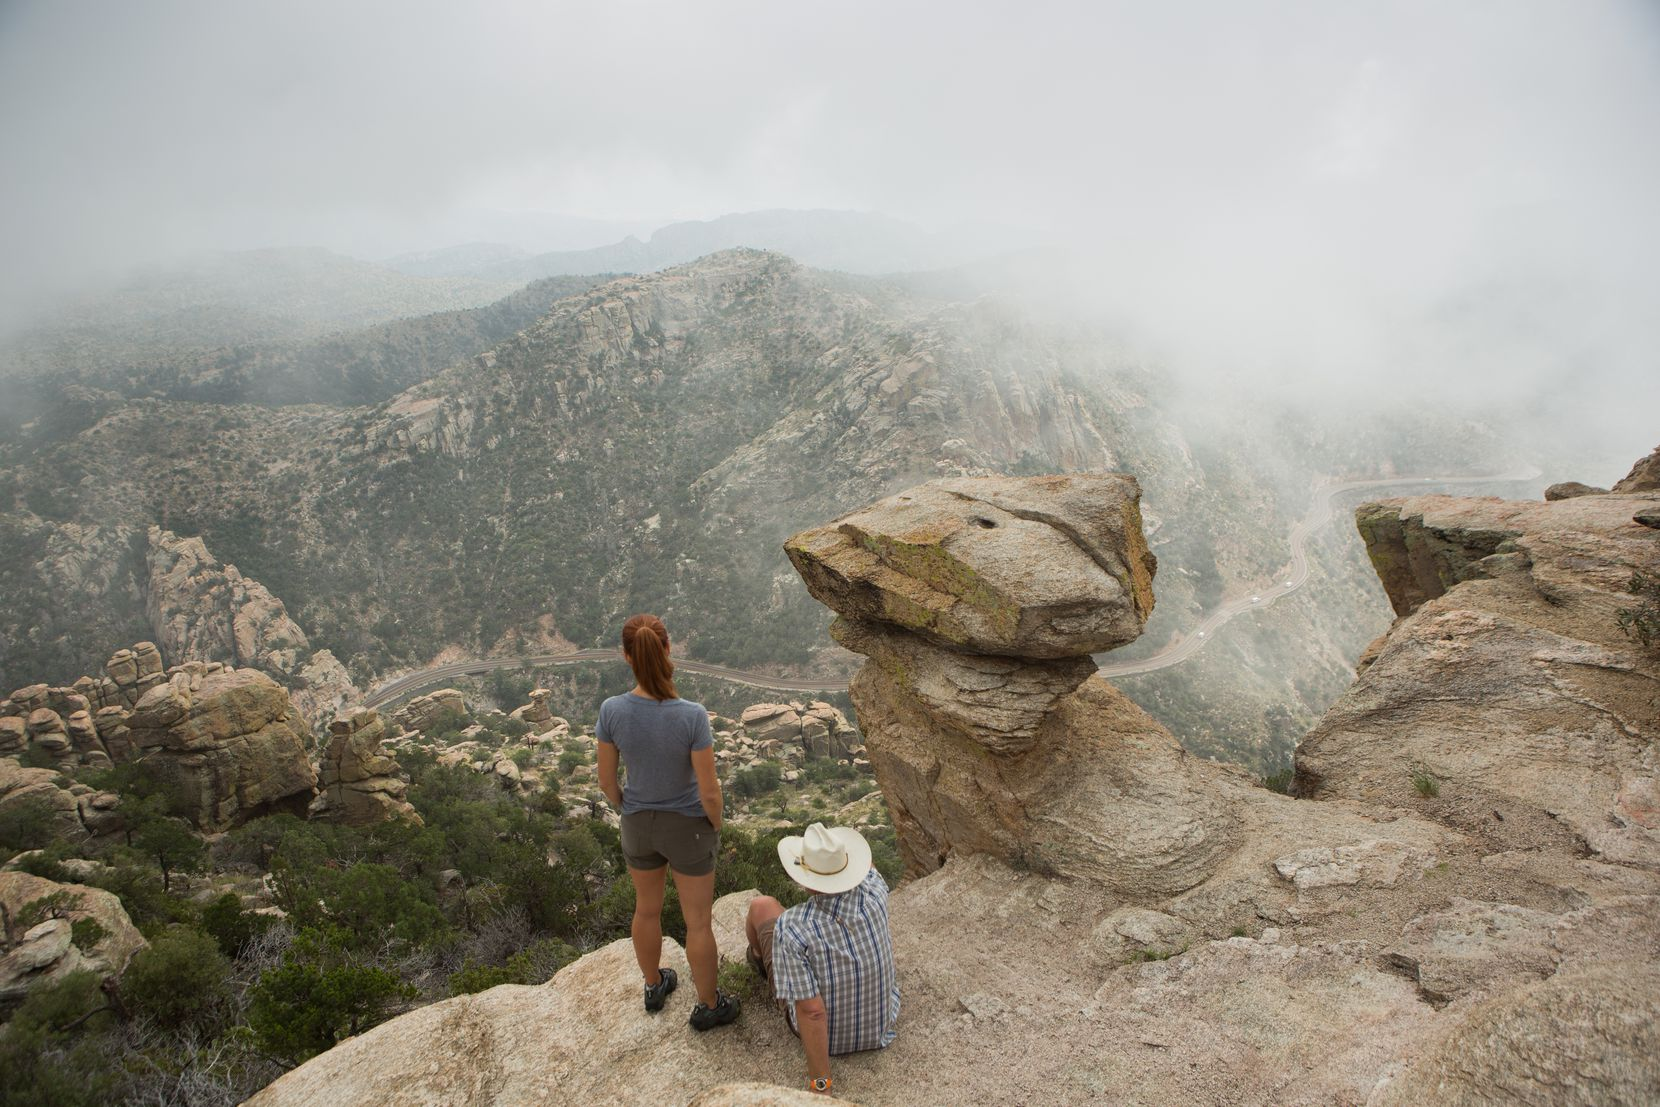 The Arizona National Scenic Trail takes travelers to Mount Lemmon in southern Arizona. With an elevation of 9,159 feet, its peak is the highest point in the Santa Catalina Mountains.